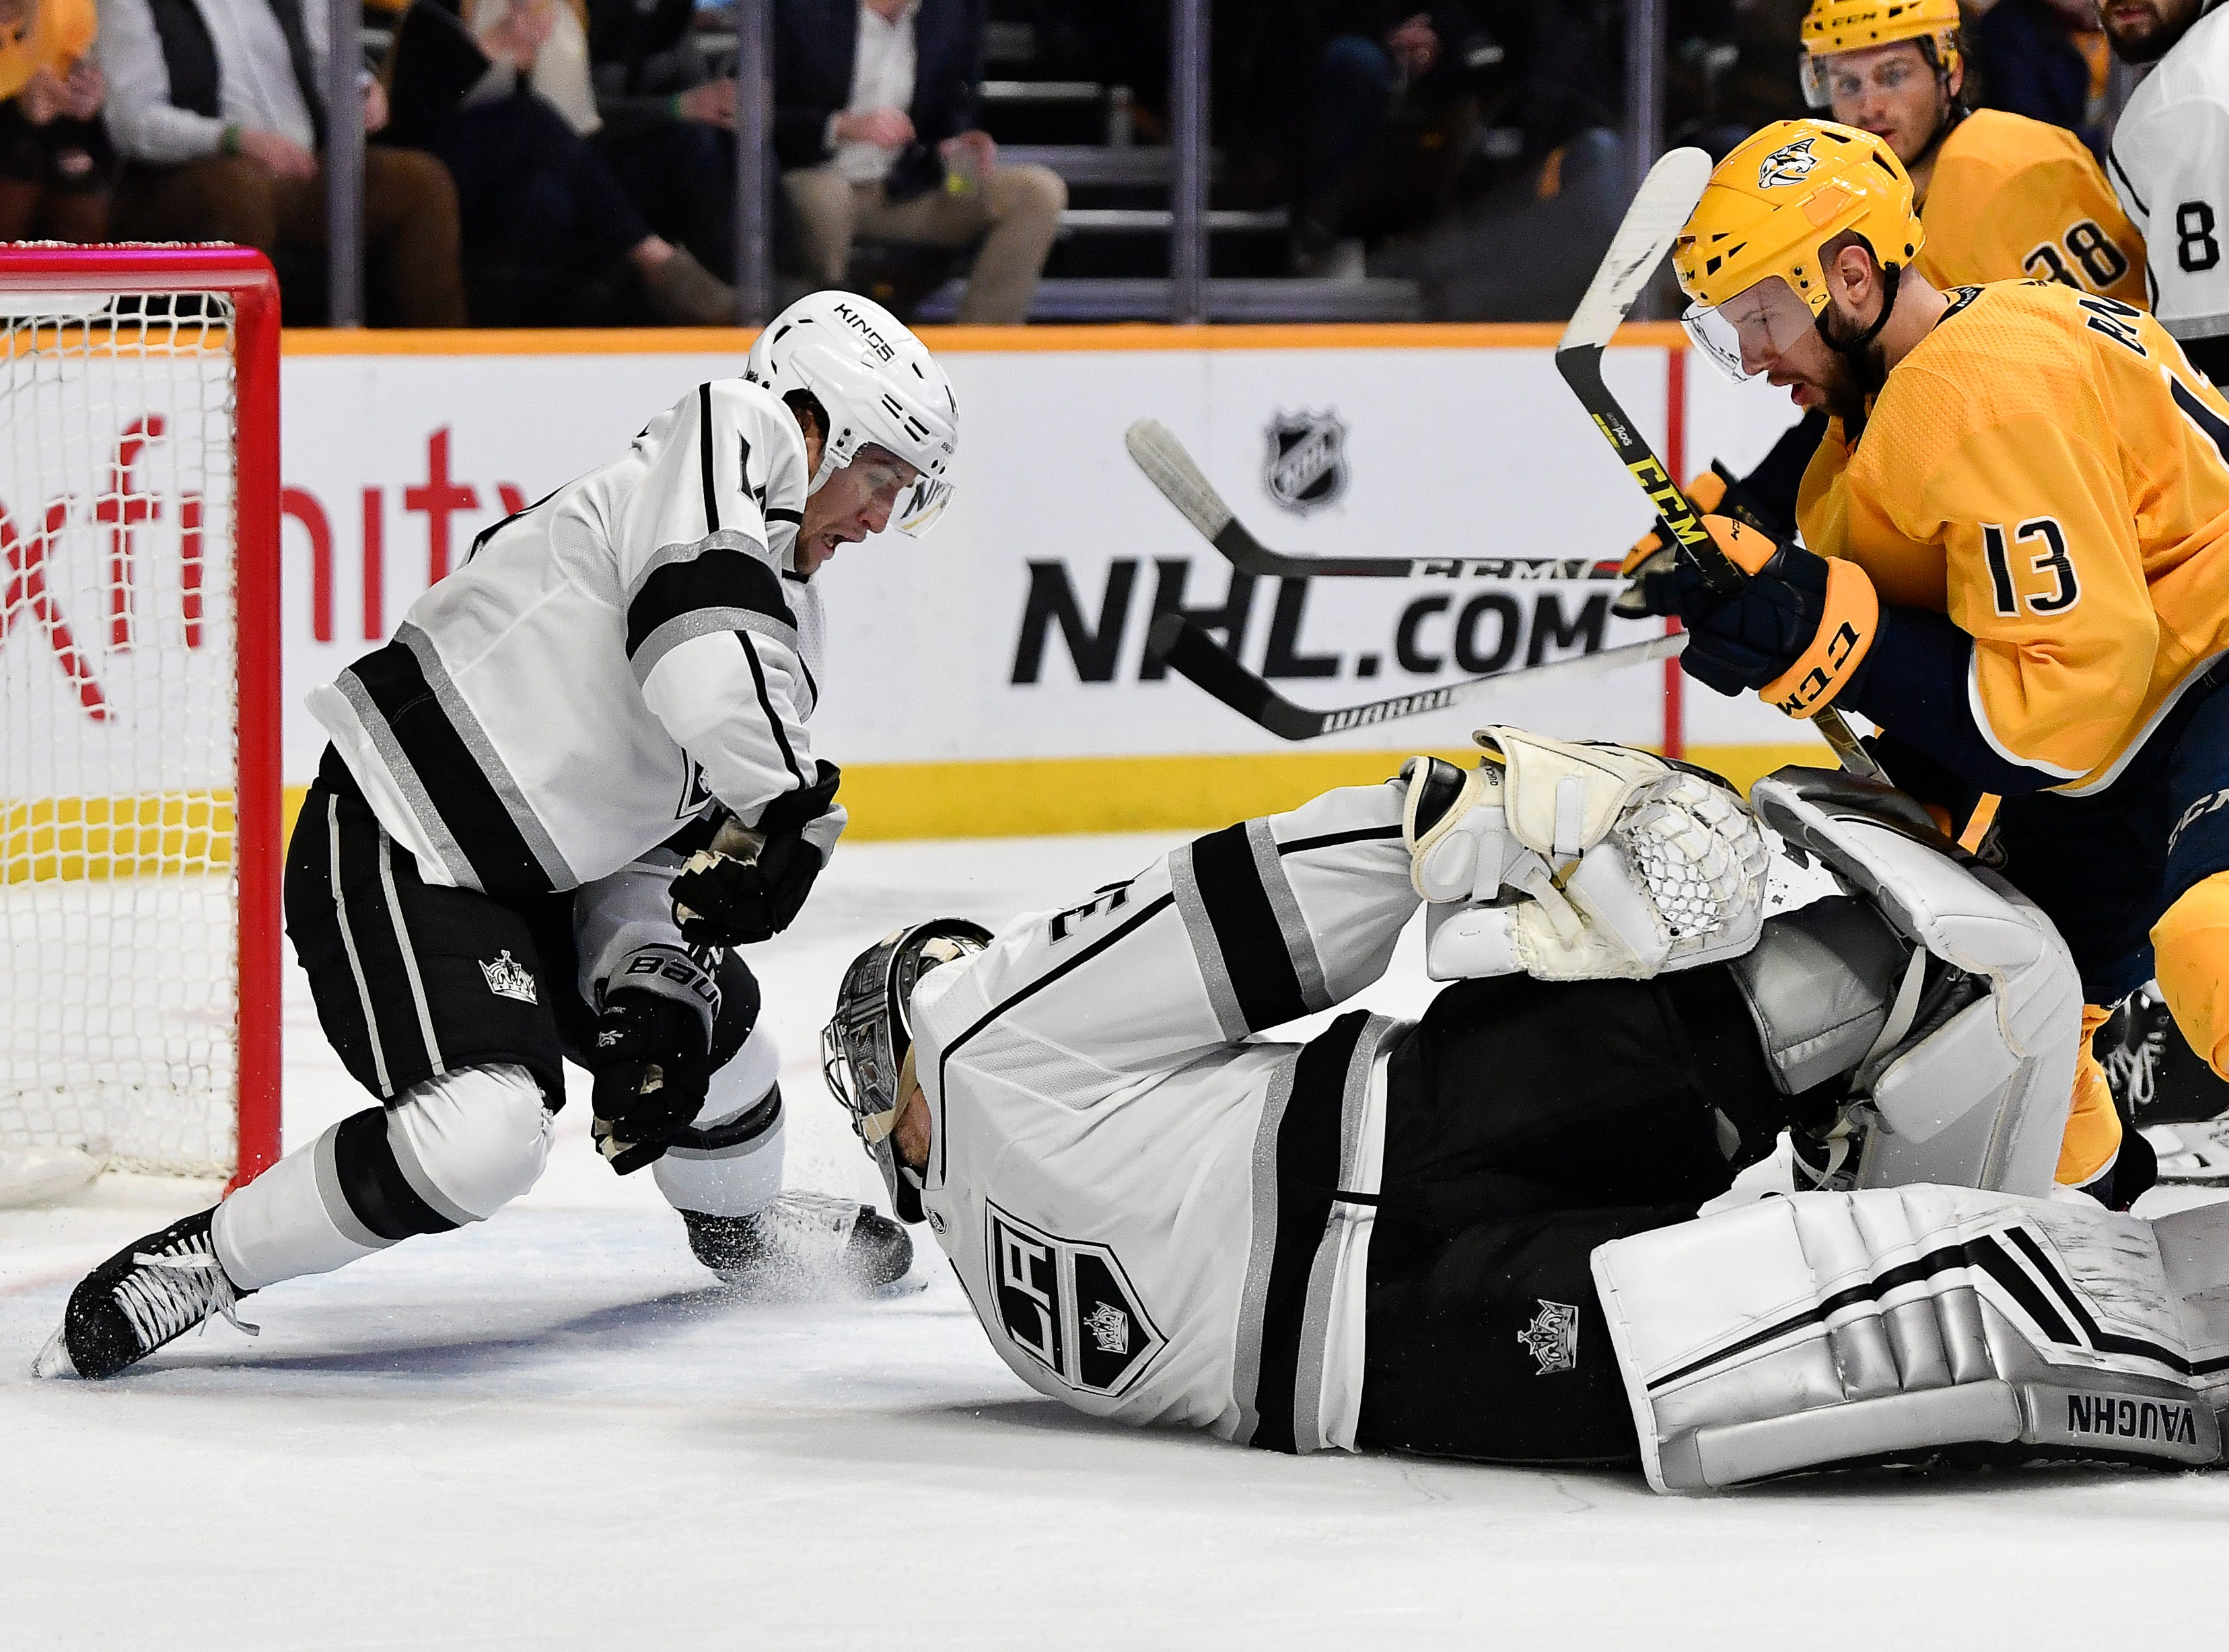 Kings goaltender Jonathan Quick (32) dives to keep a Predators shot on goal out of the net with help from left wing Brendan Leipsic (14) as Predators center Nick Bonino (13) attacks during the third period at Bridgestone Arena Thursday, Feb. 21, 2019 in Nashville, Tenn.